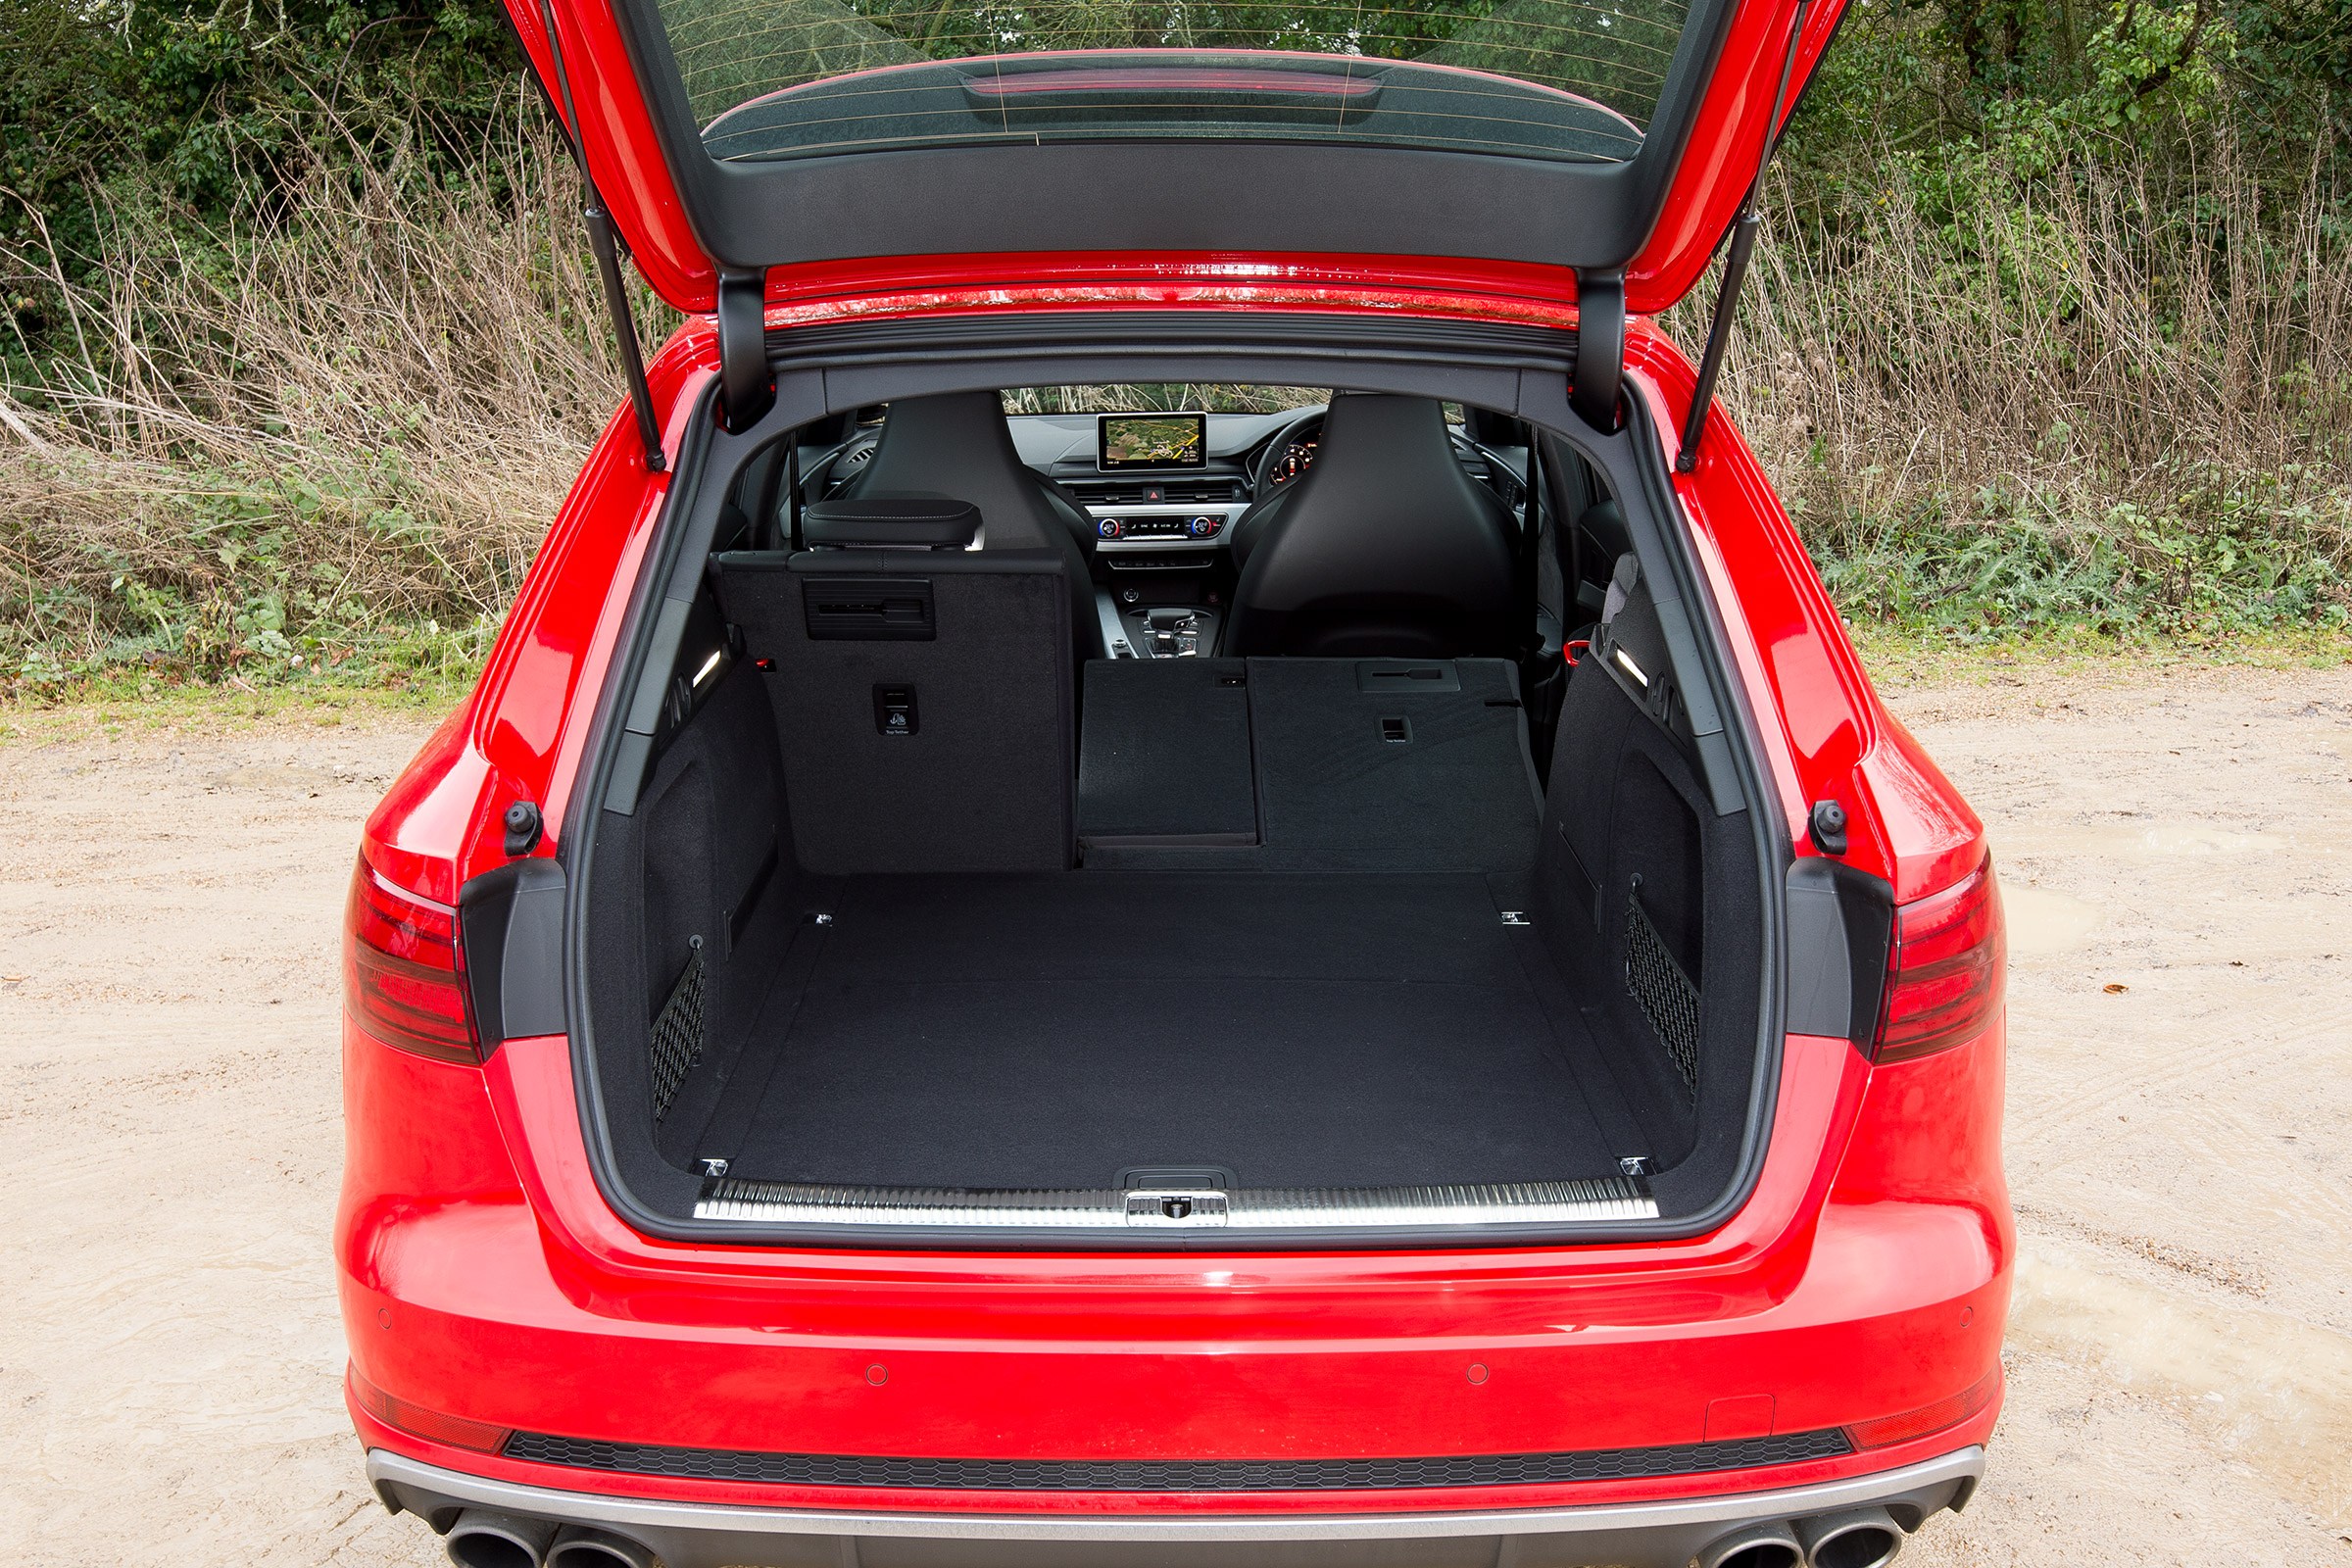 2017 Audi S4 Avant Interior View Rear Cargo (Photo 11 of 17)